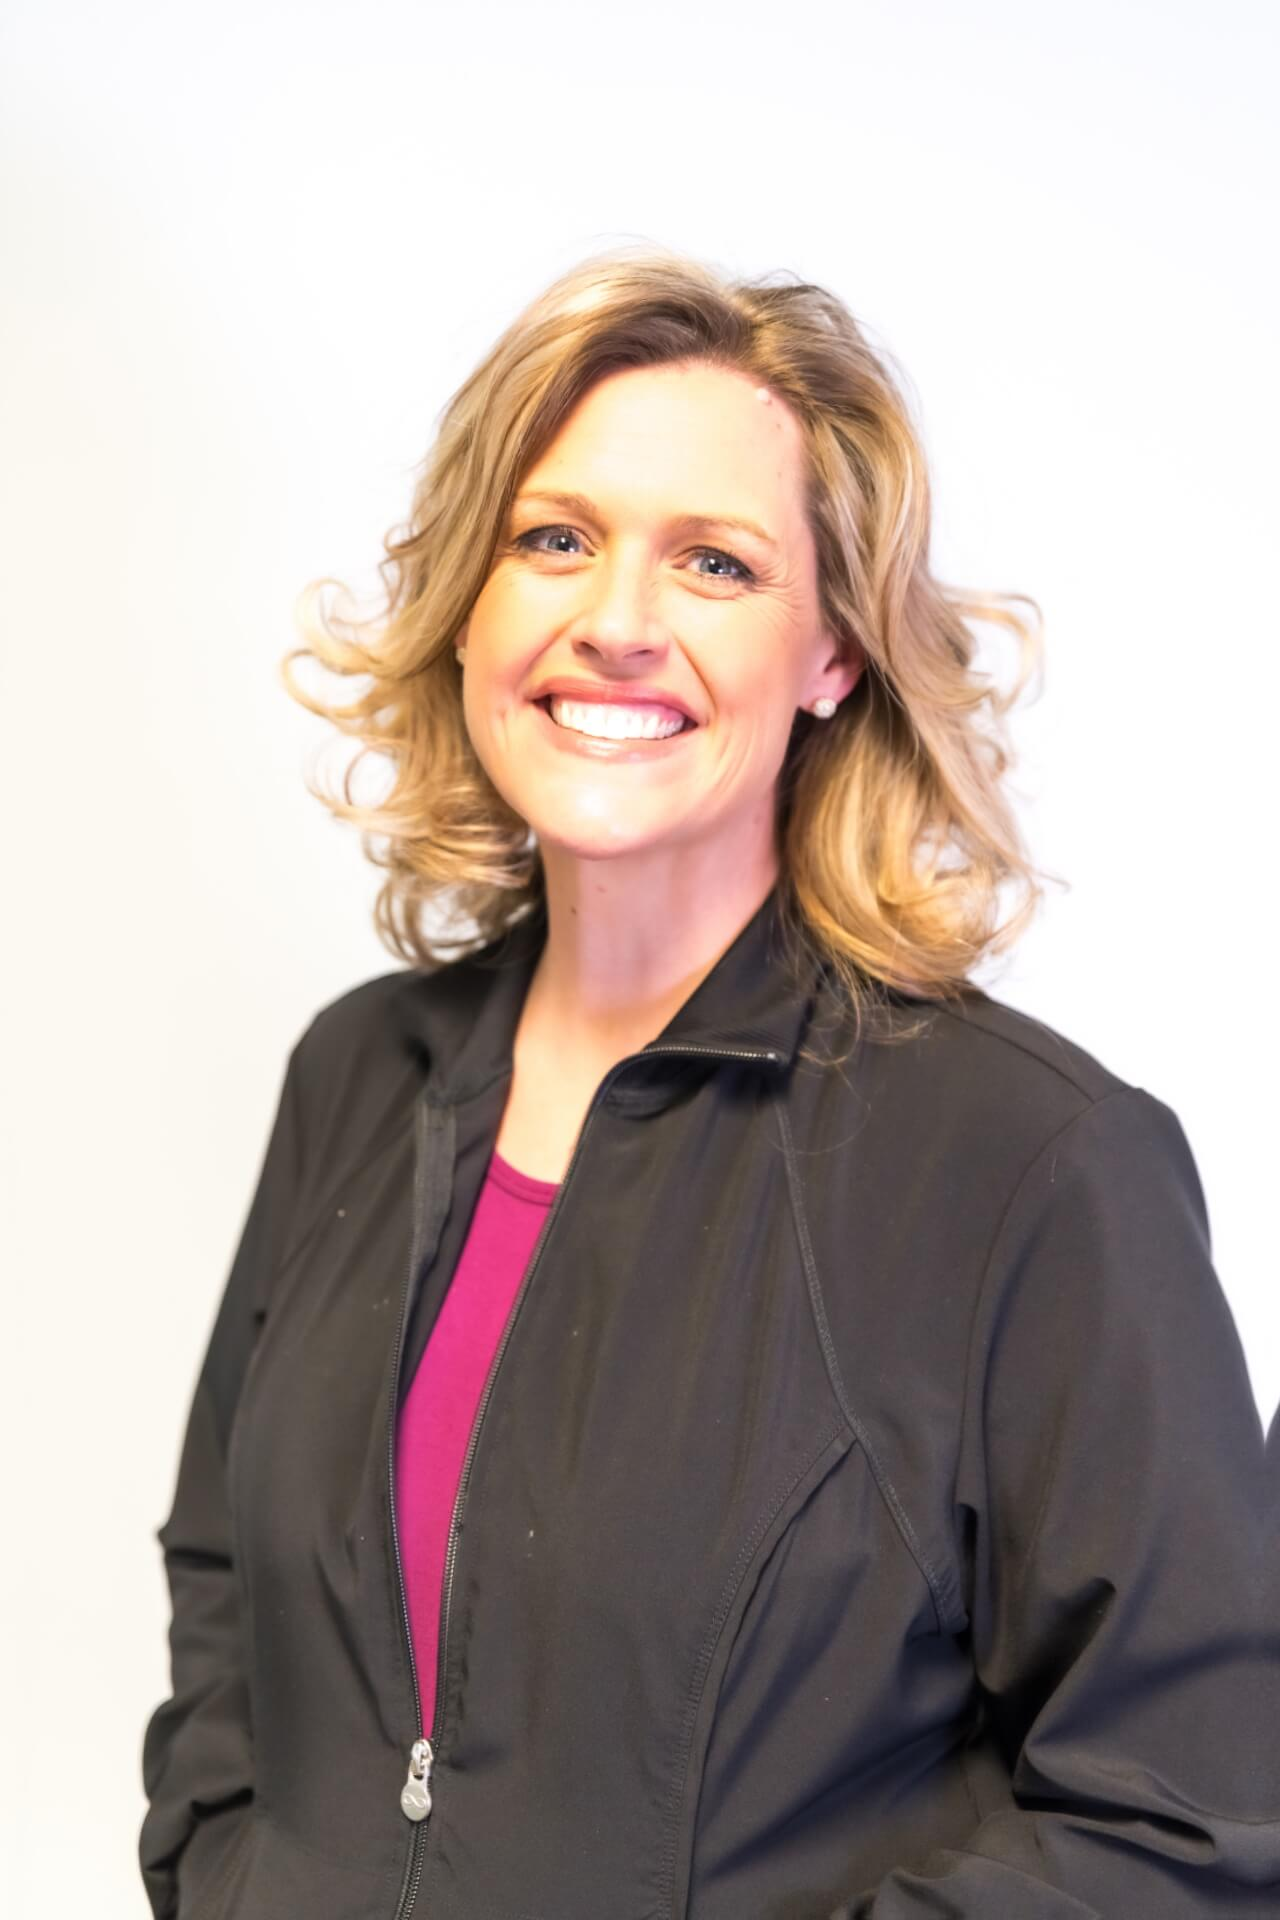 Stacey helps educate patients about their teeth cleaning and gum health